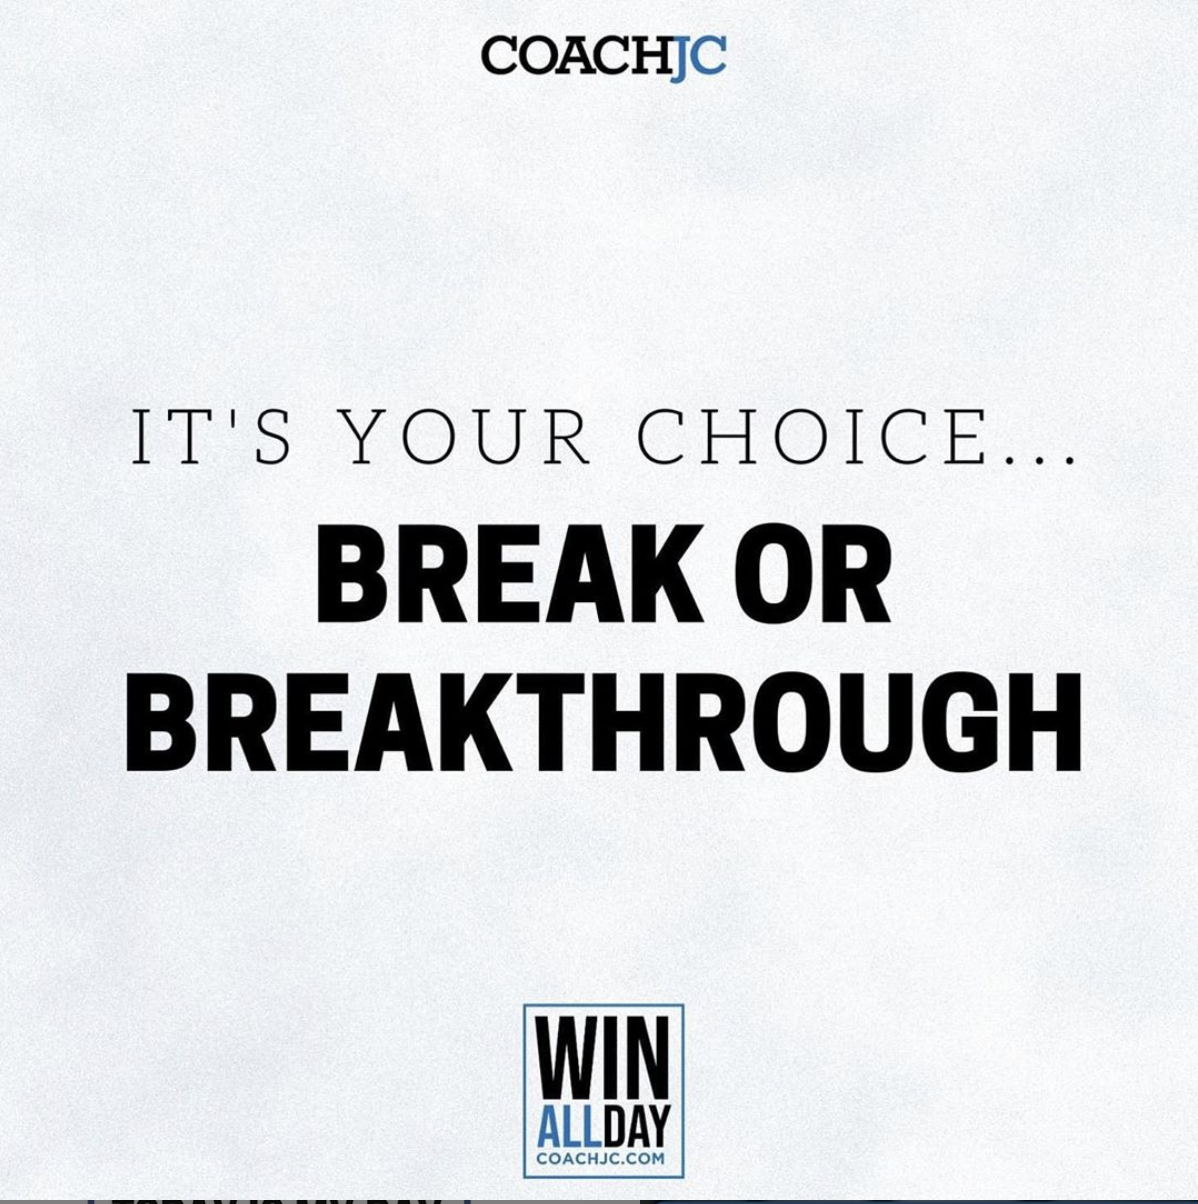 BREAK or BREAKTHROUGH!?!